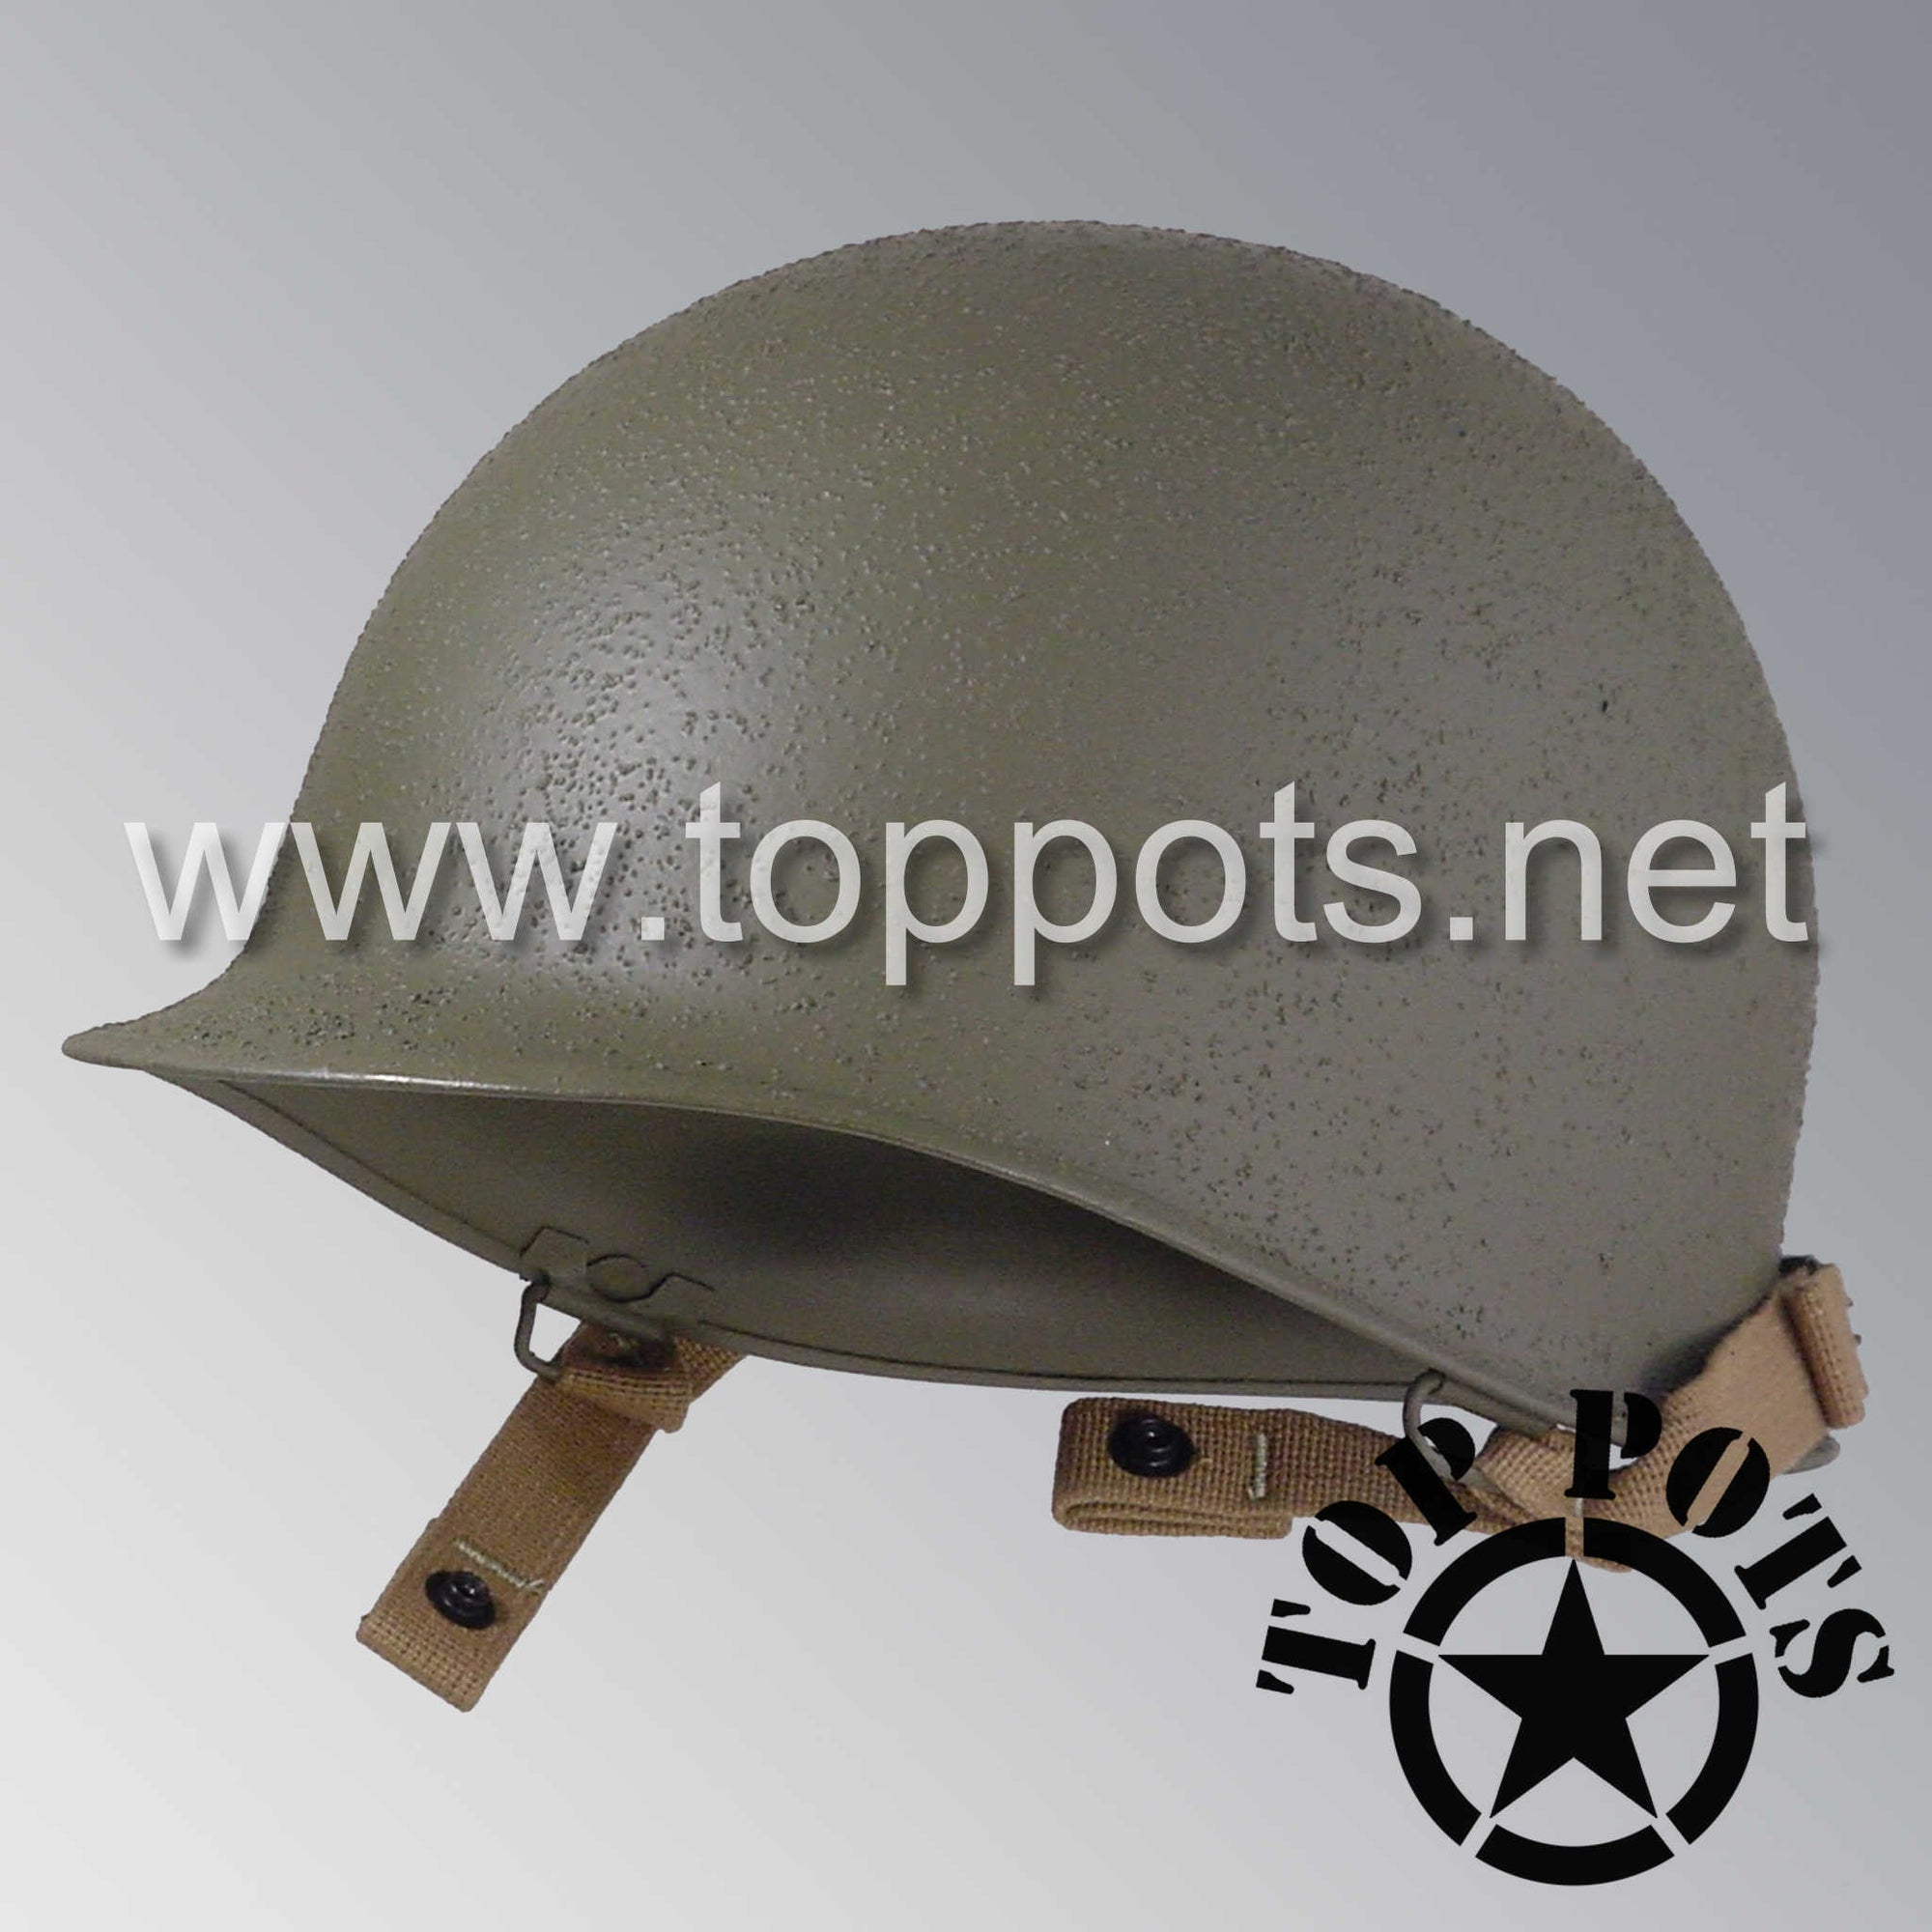 Image 1 of WWII US Army Restored Original M1C Paratrooper Airborne Helmet Swivel Bale Shell and Chinstraps